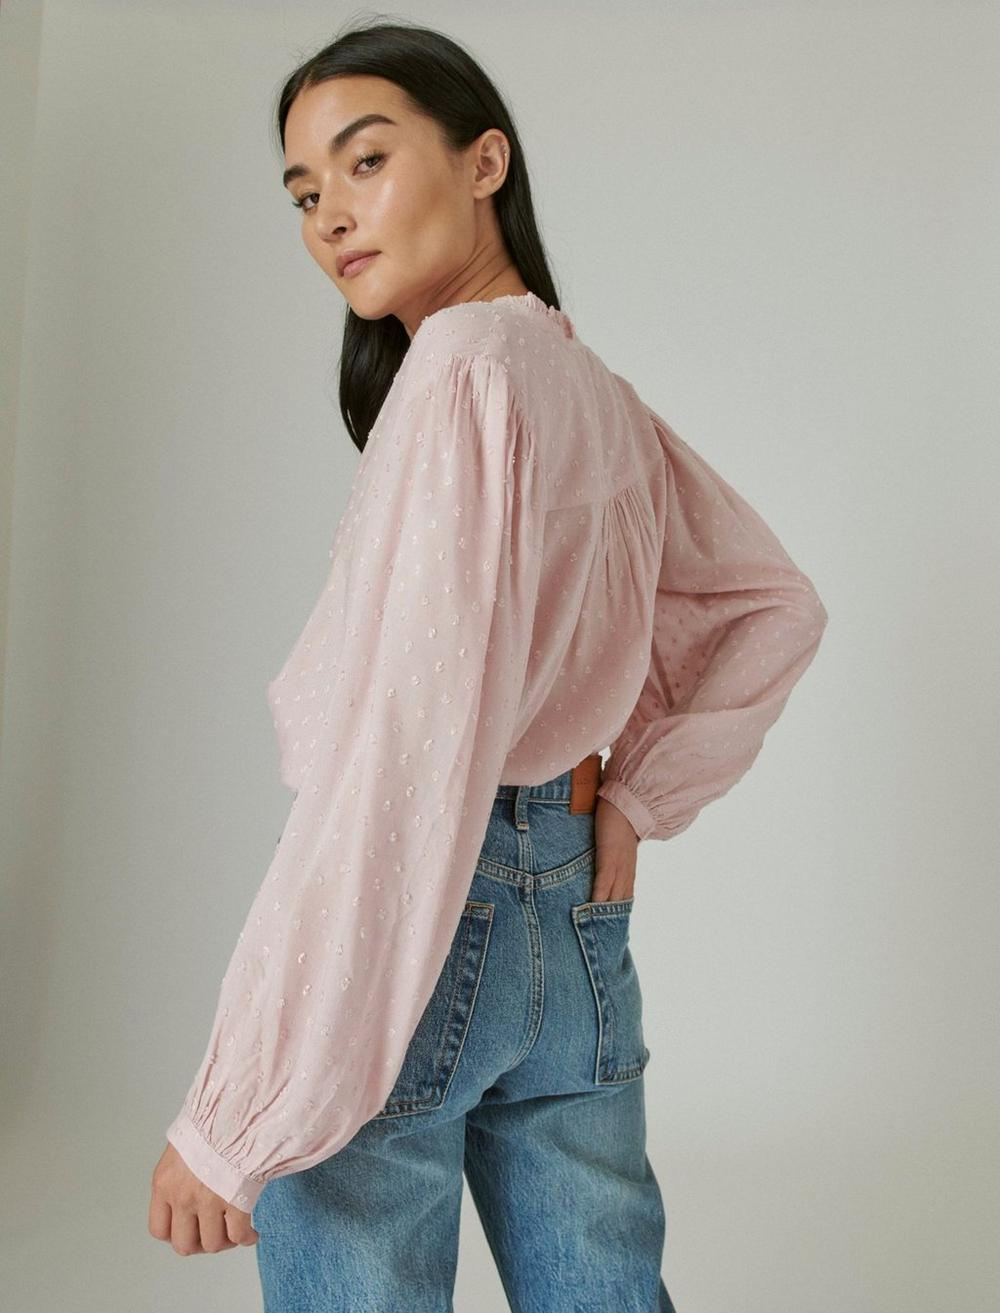 CLIP DOT LONG SLEEVE BUTTON UP BLOUSE, image 4